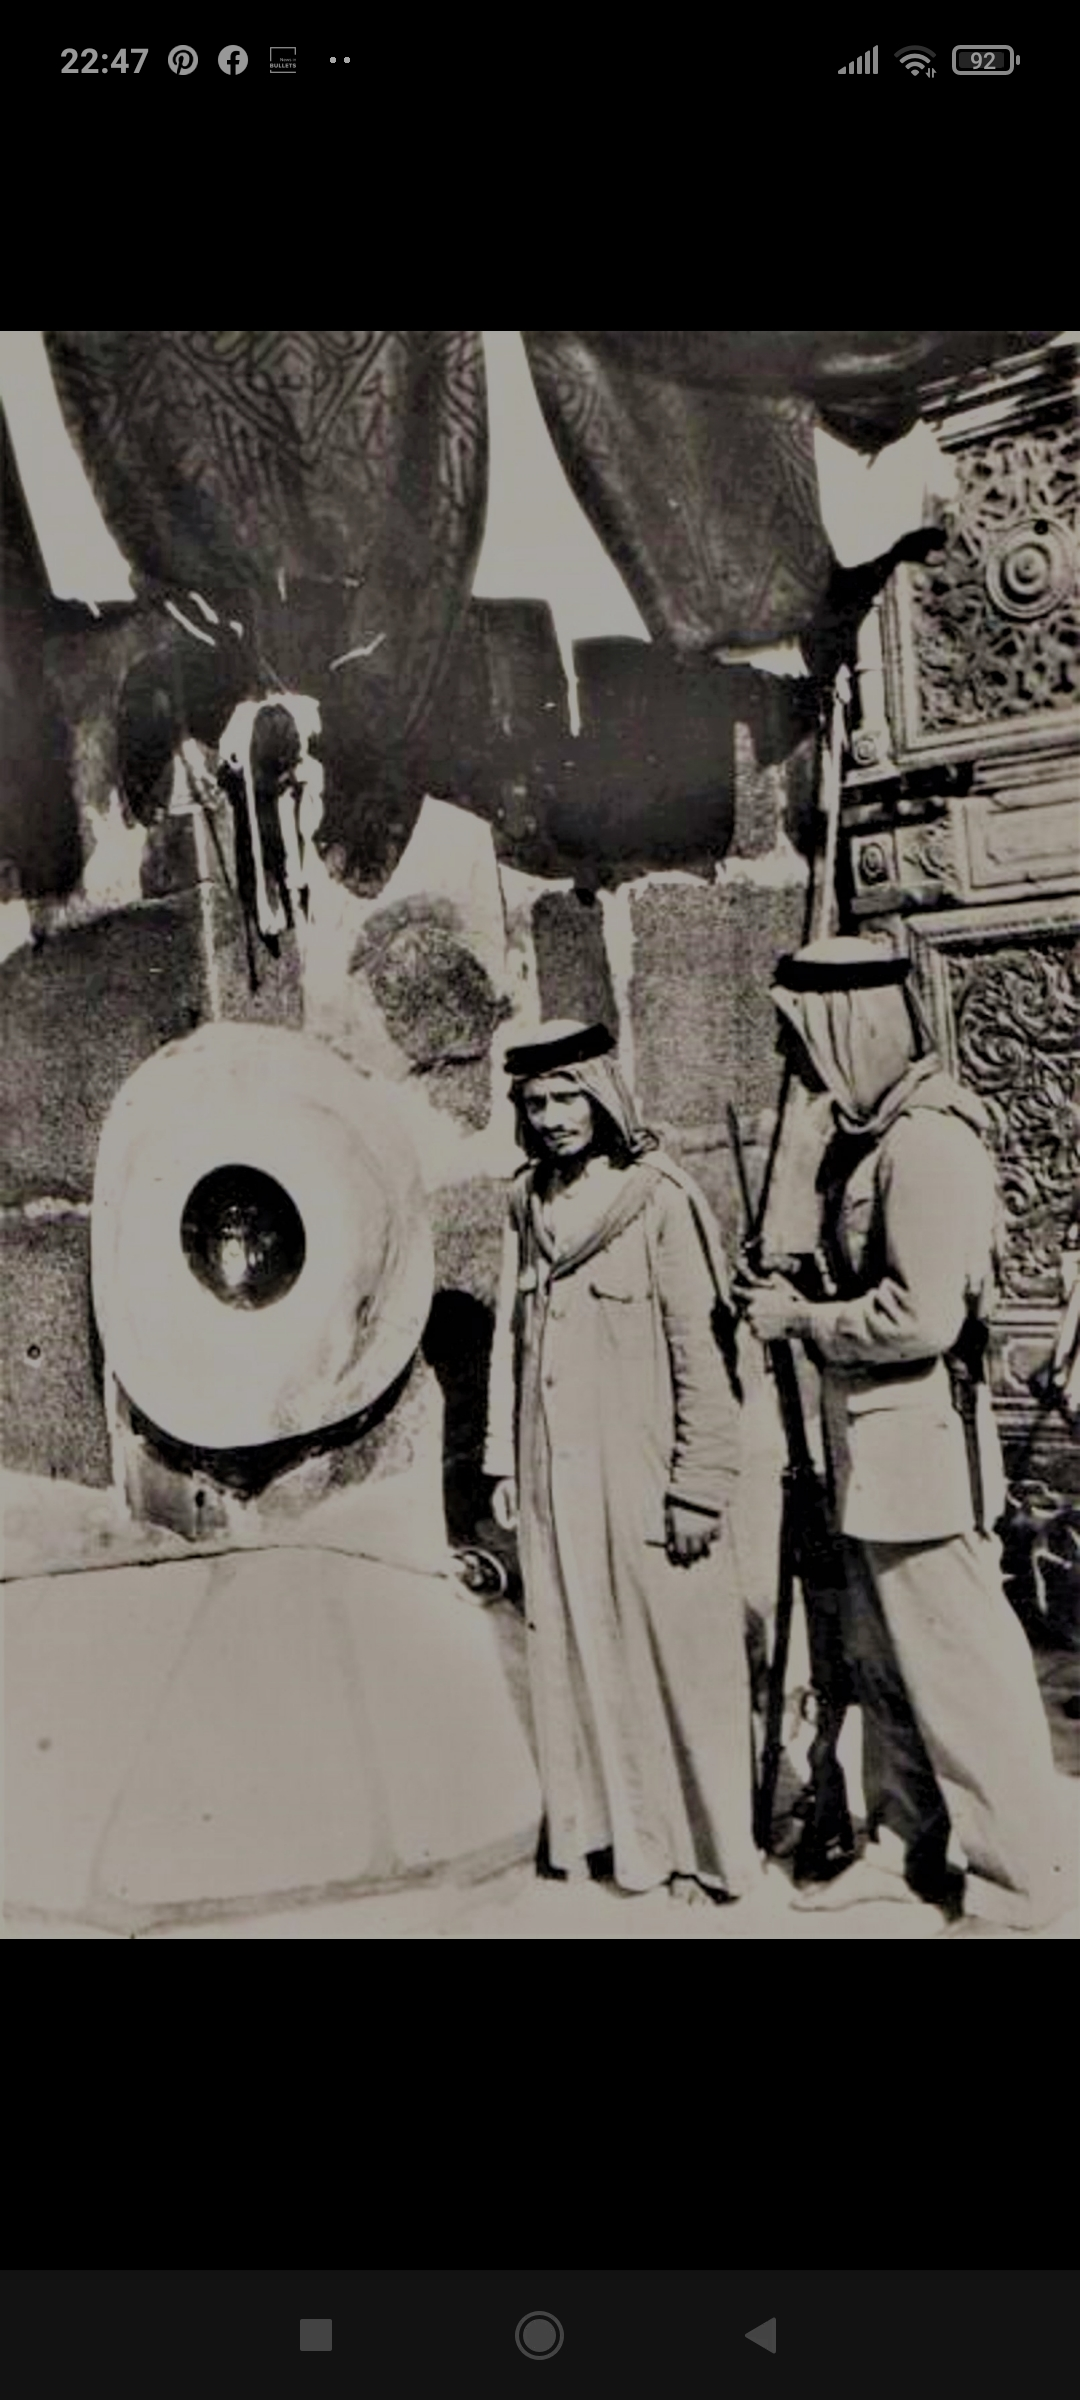 An old image of Kaaba, that had pillars whose designs remind you of Hindu temple pillars